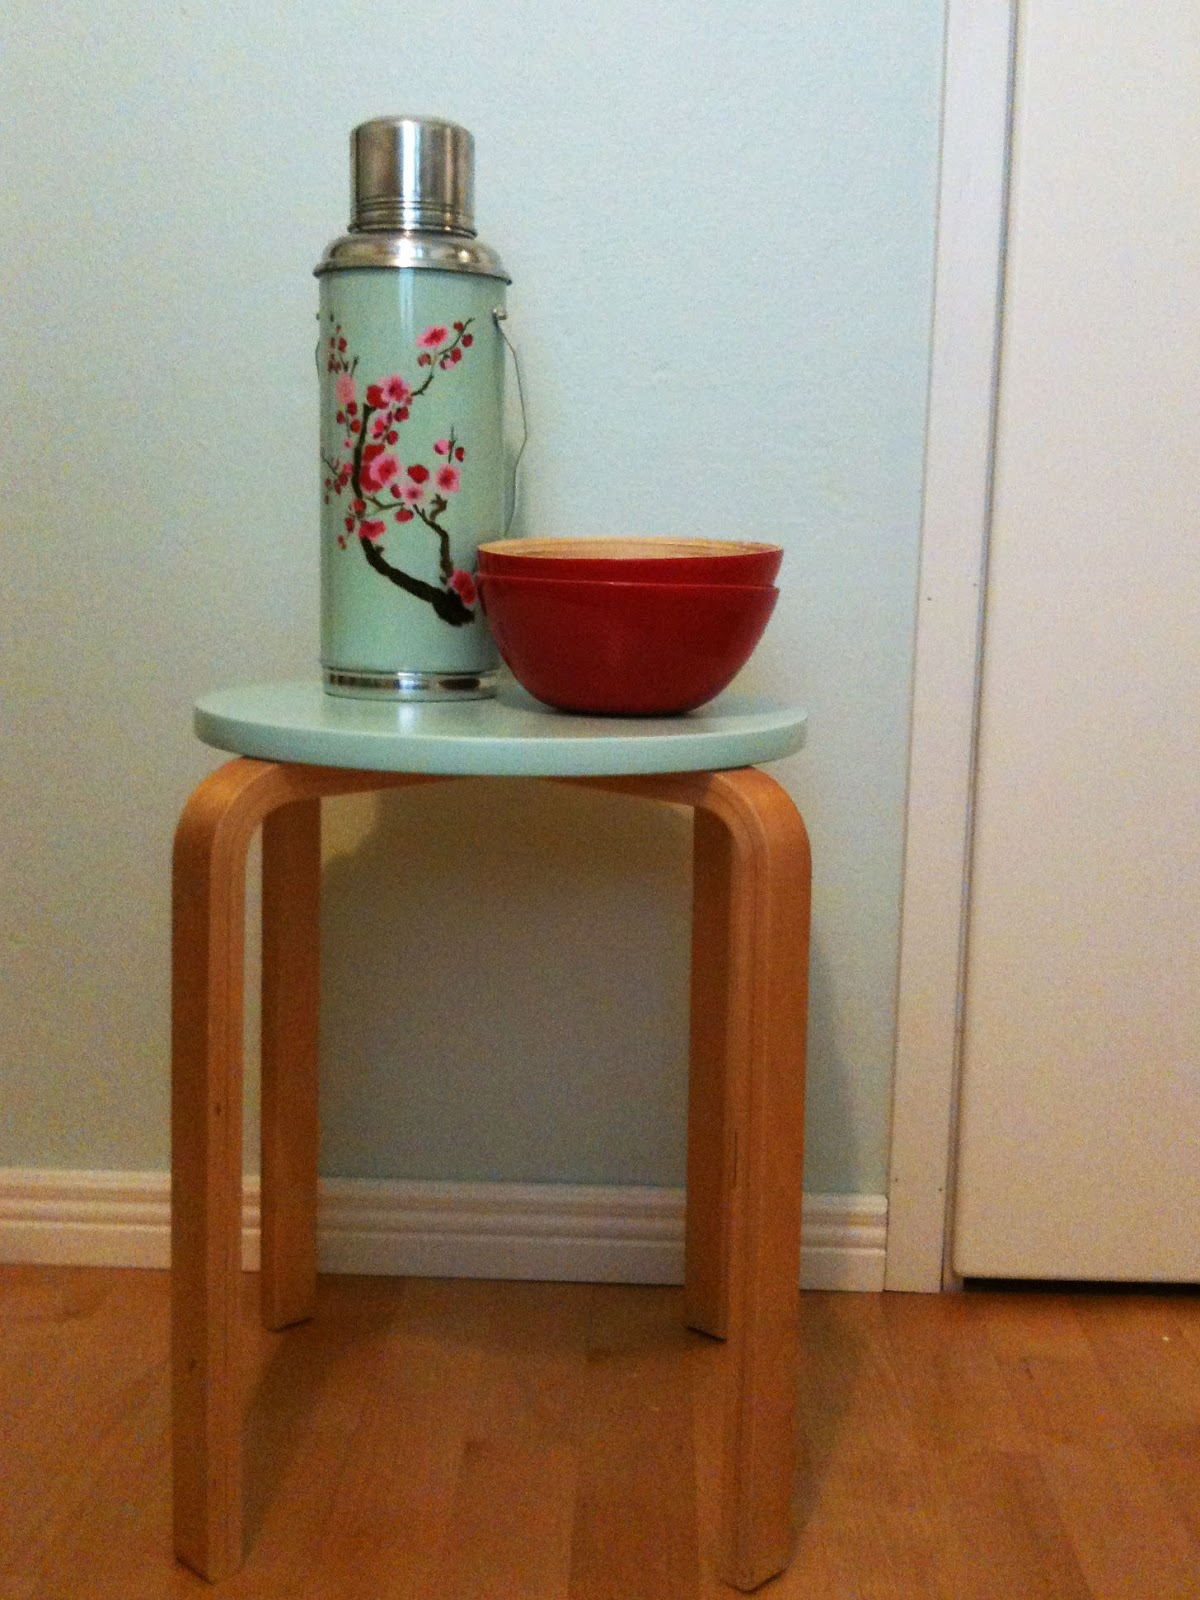 cherry marmalade ikea hack new life to frosta stools. Black Bedroom Furniture Sets. Home Design Ideas